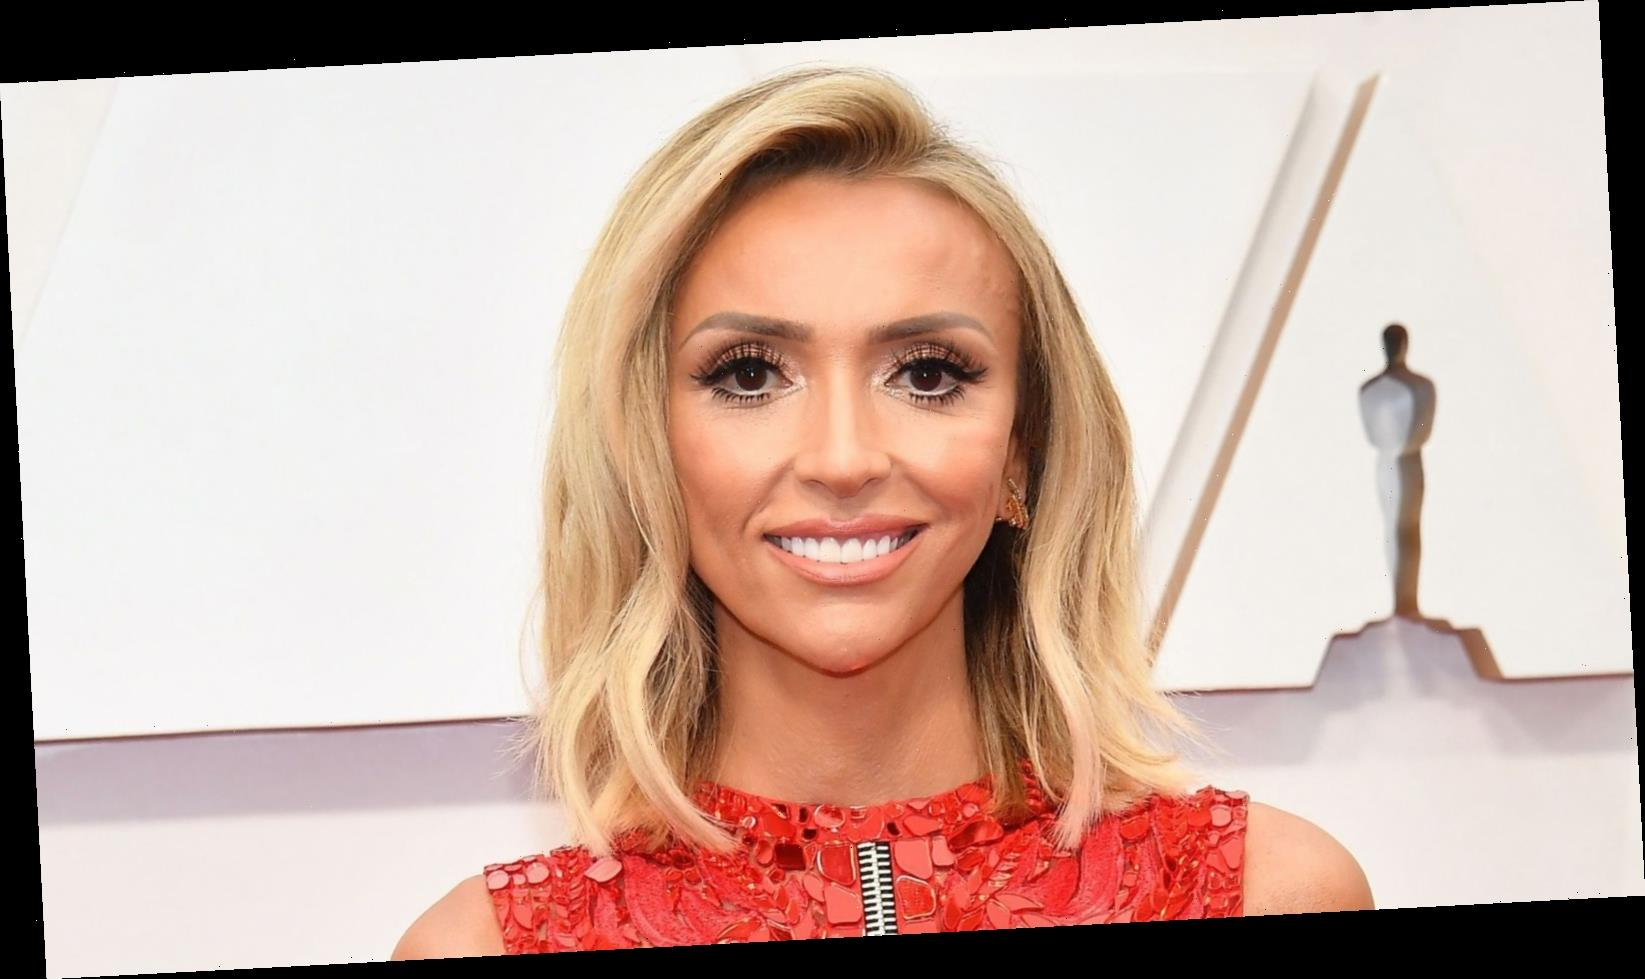 Giuliana Rancic is missing the Emmys red carpet. Here's why